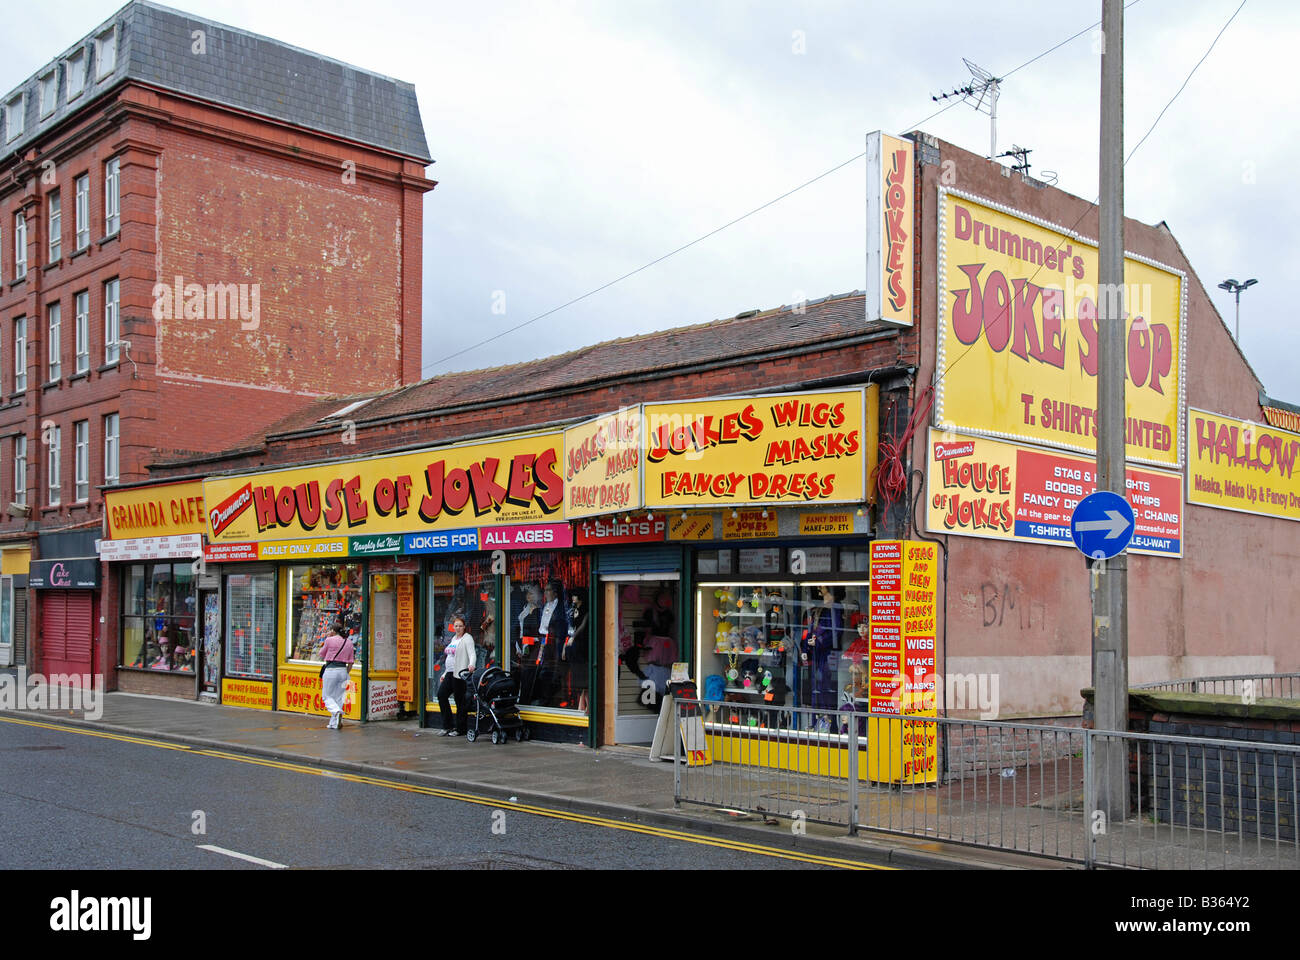 Une grande boutique de farces à Blackpool, England, UK Photo Stock